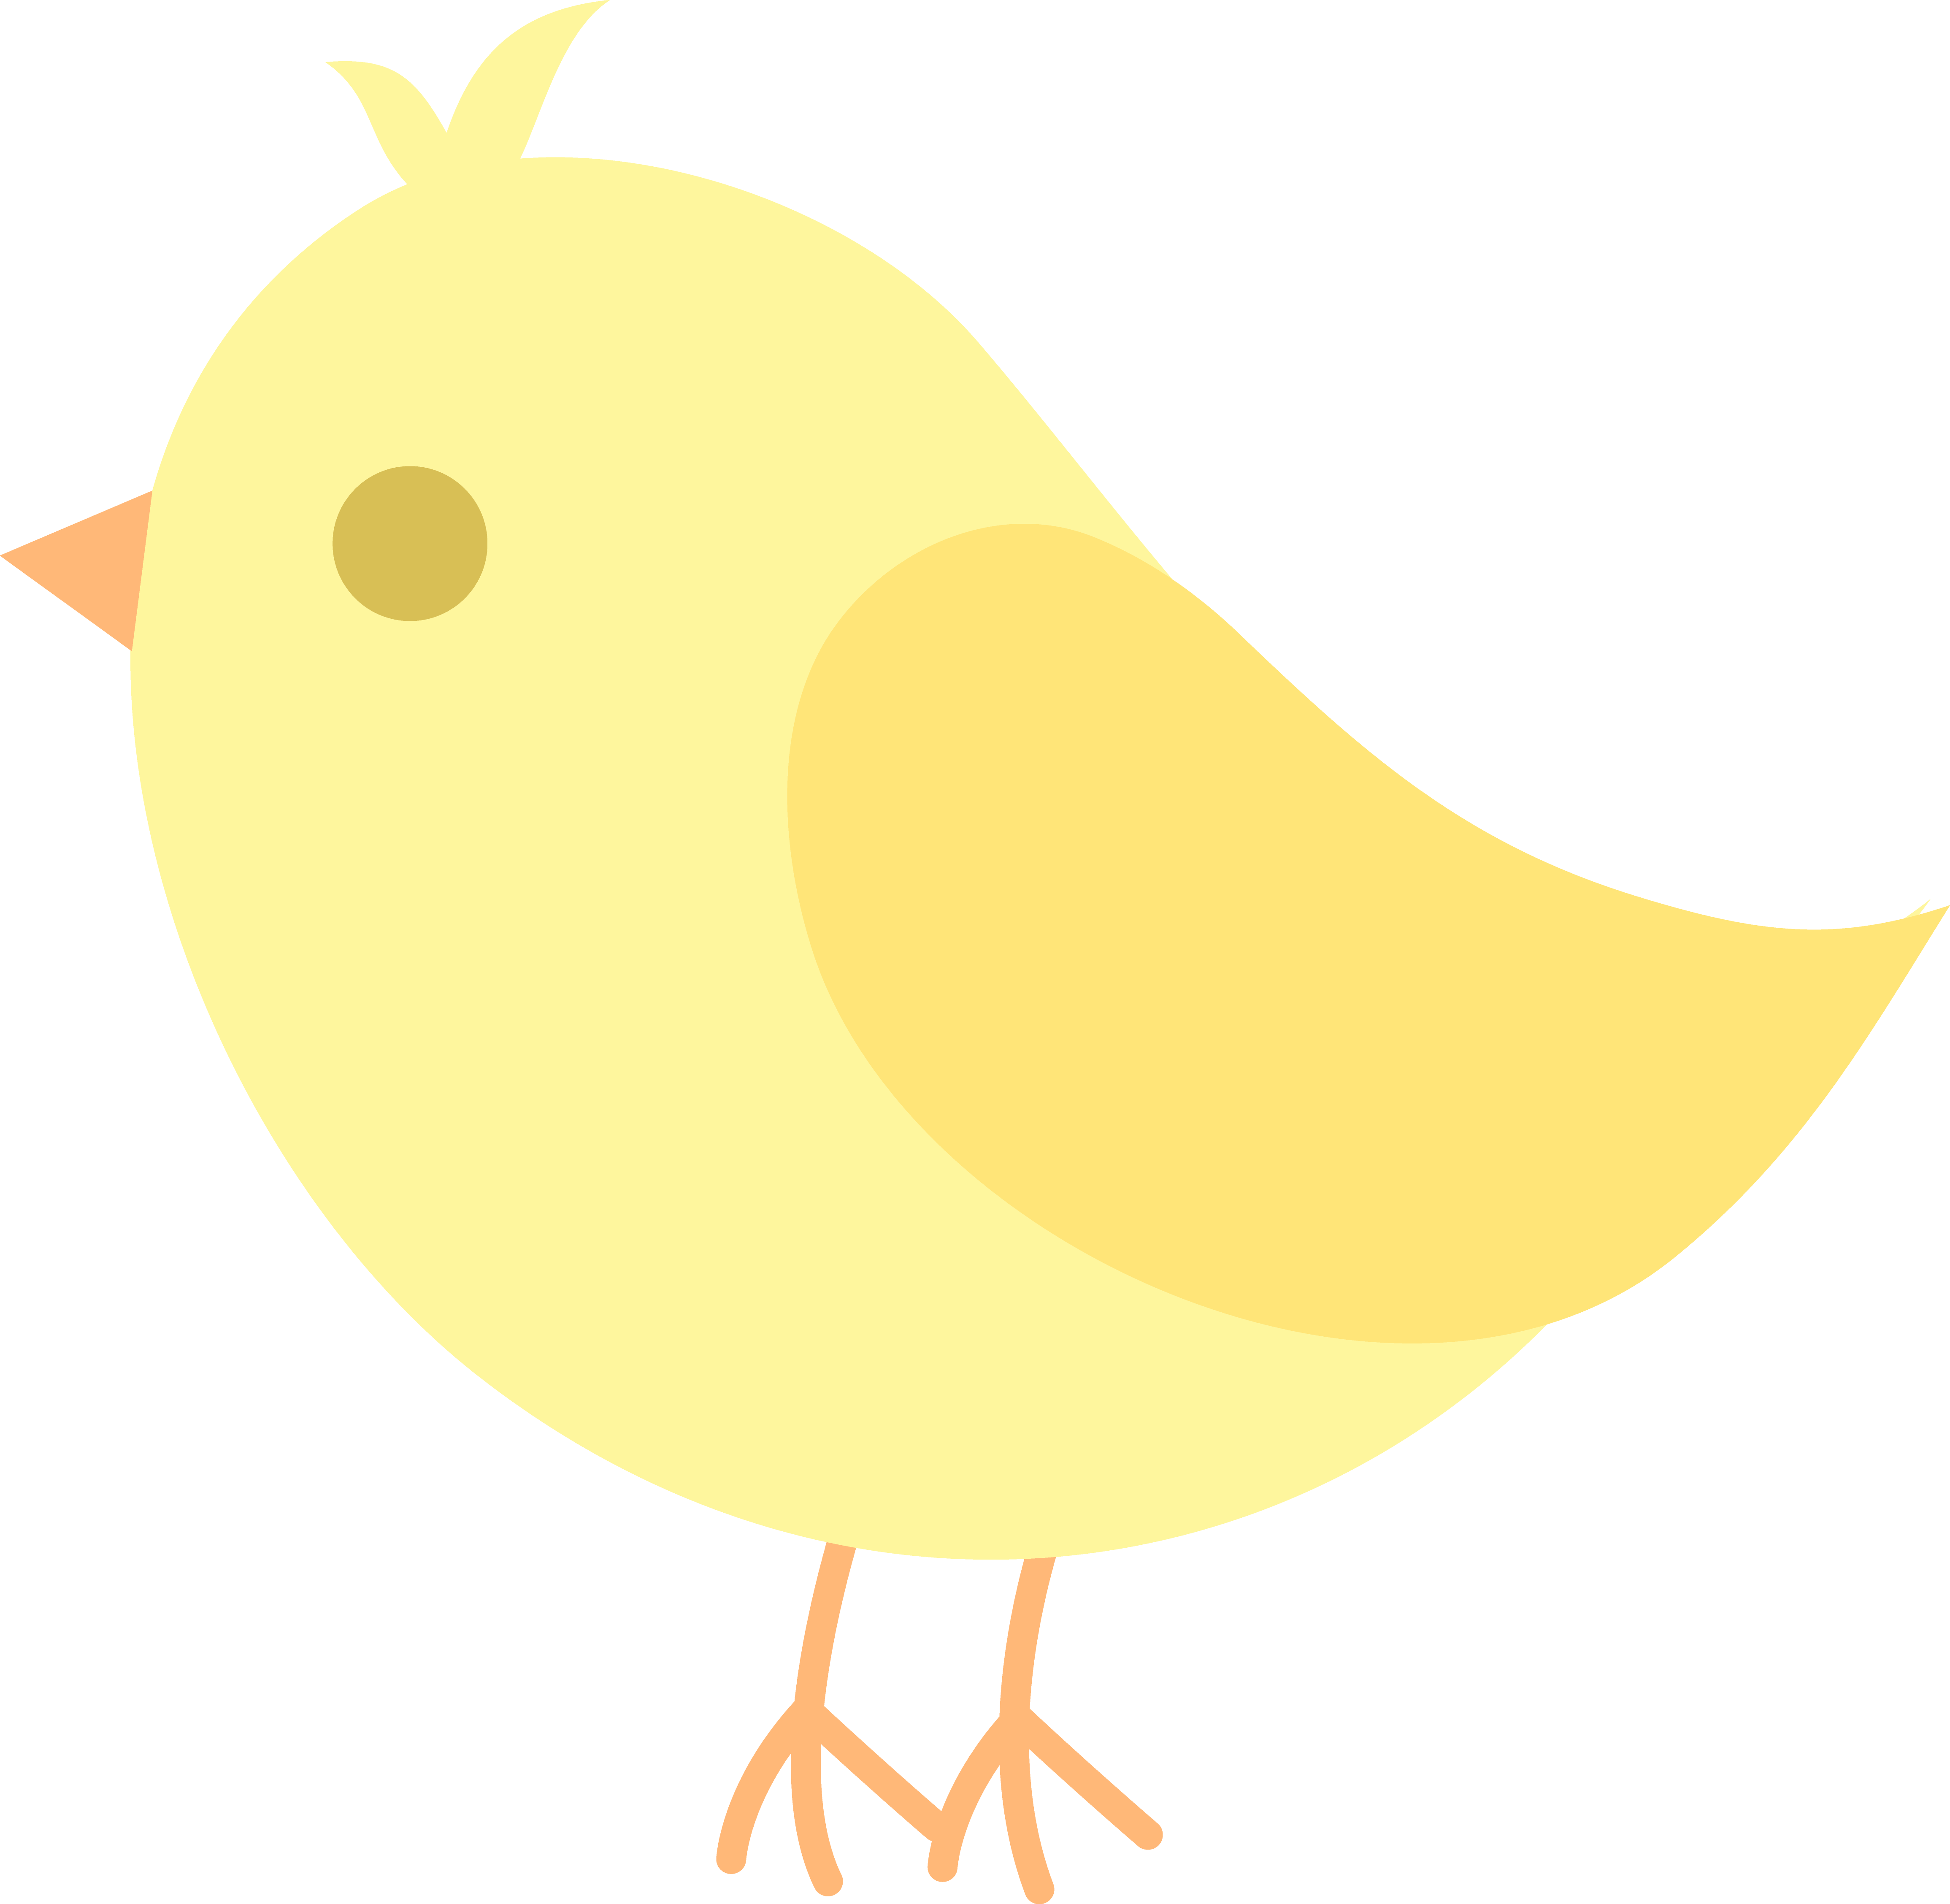 Bird clipart at getdrawings. Nursery drawing yellow png transparent download